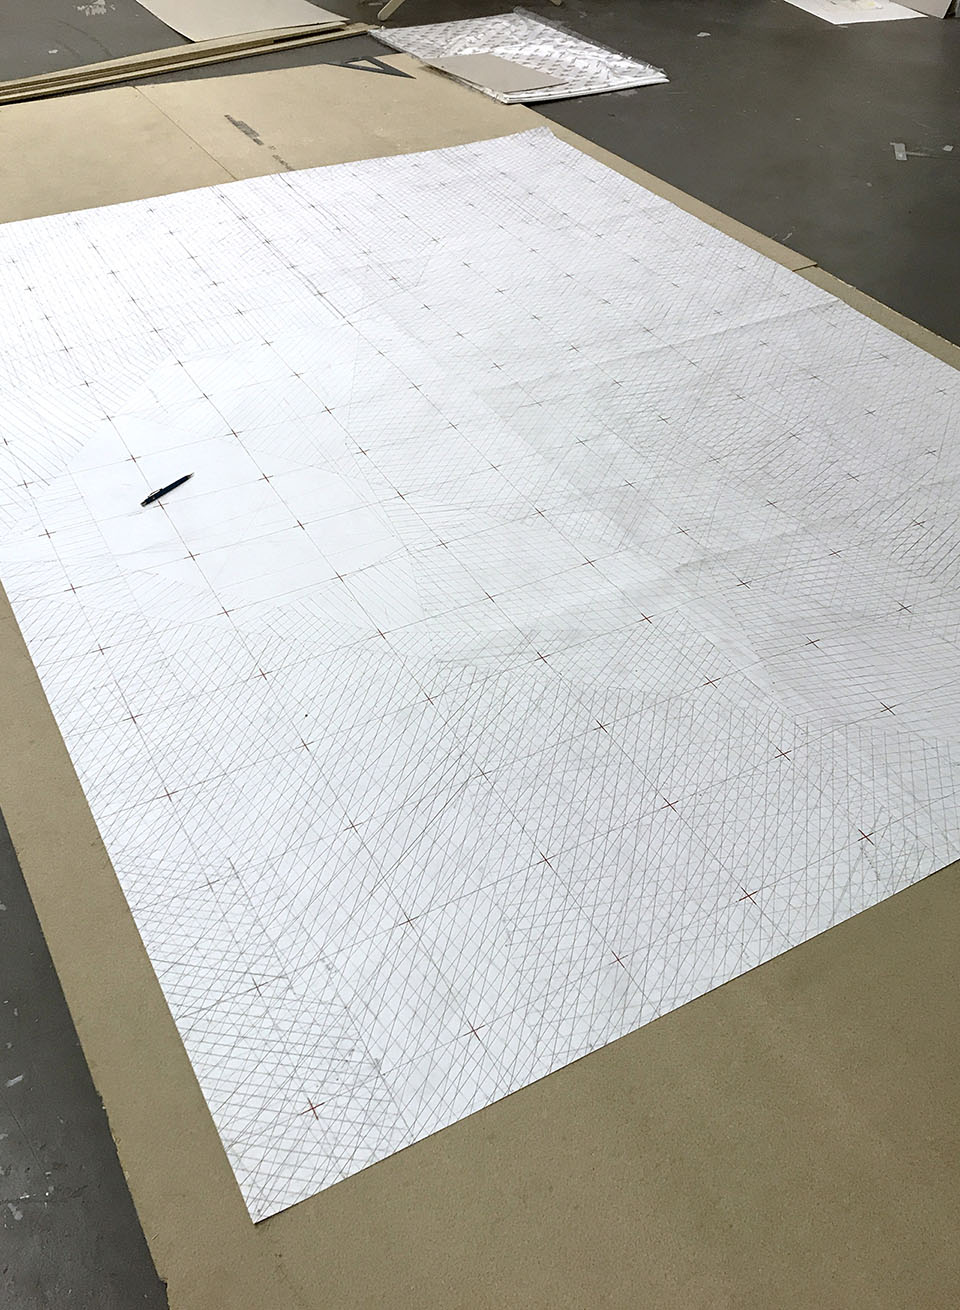 Computational drawing experiment with robotic painting at the Bergen School of Architecture in collaboration with Machinic Protocols